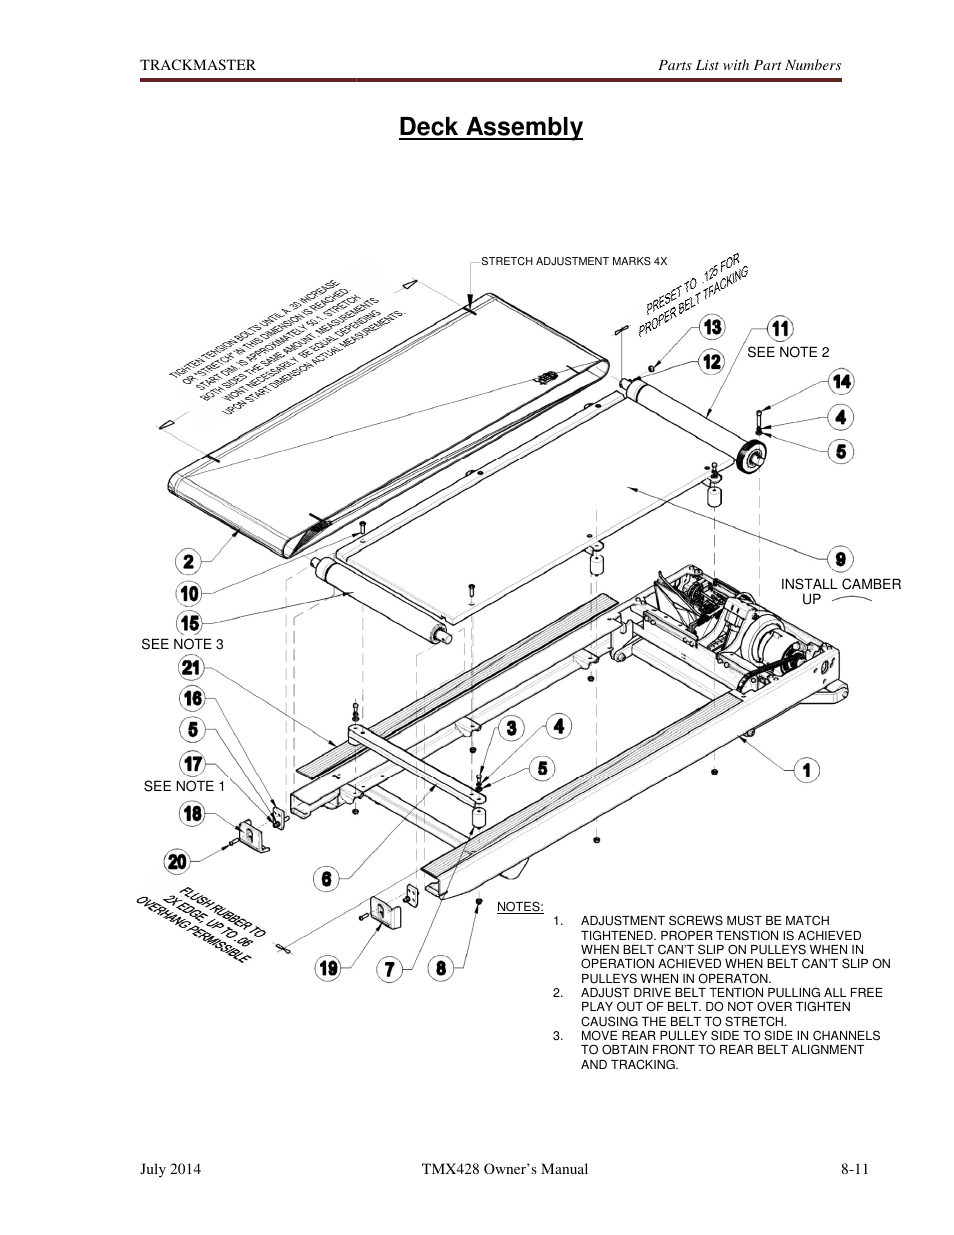 Deck assembly welch allyn tmx428cp trackmaster medical treadmill user manual user manual page deck assembly